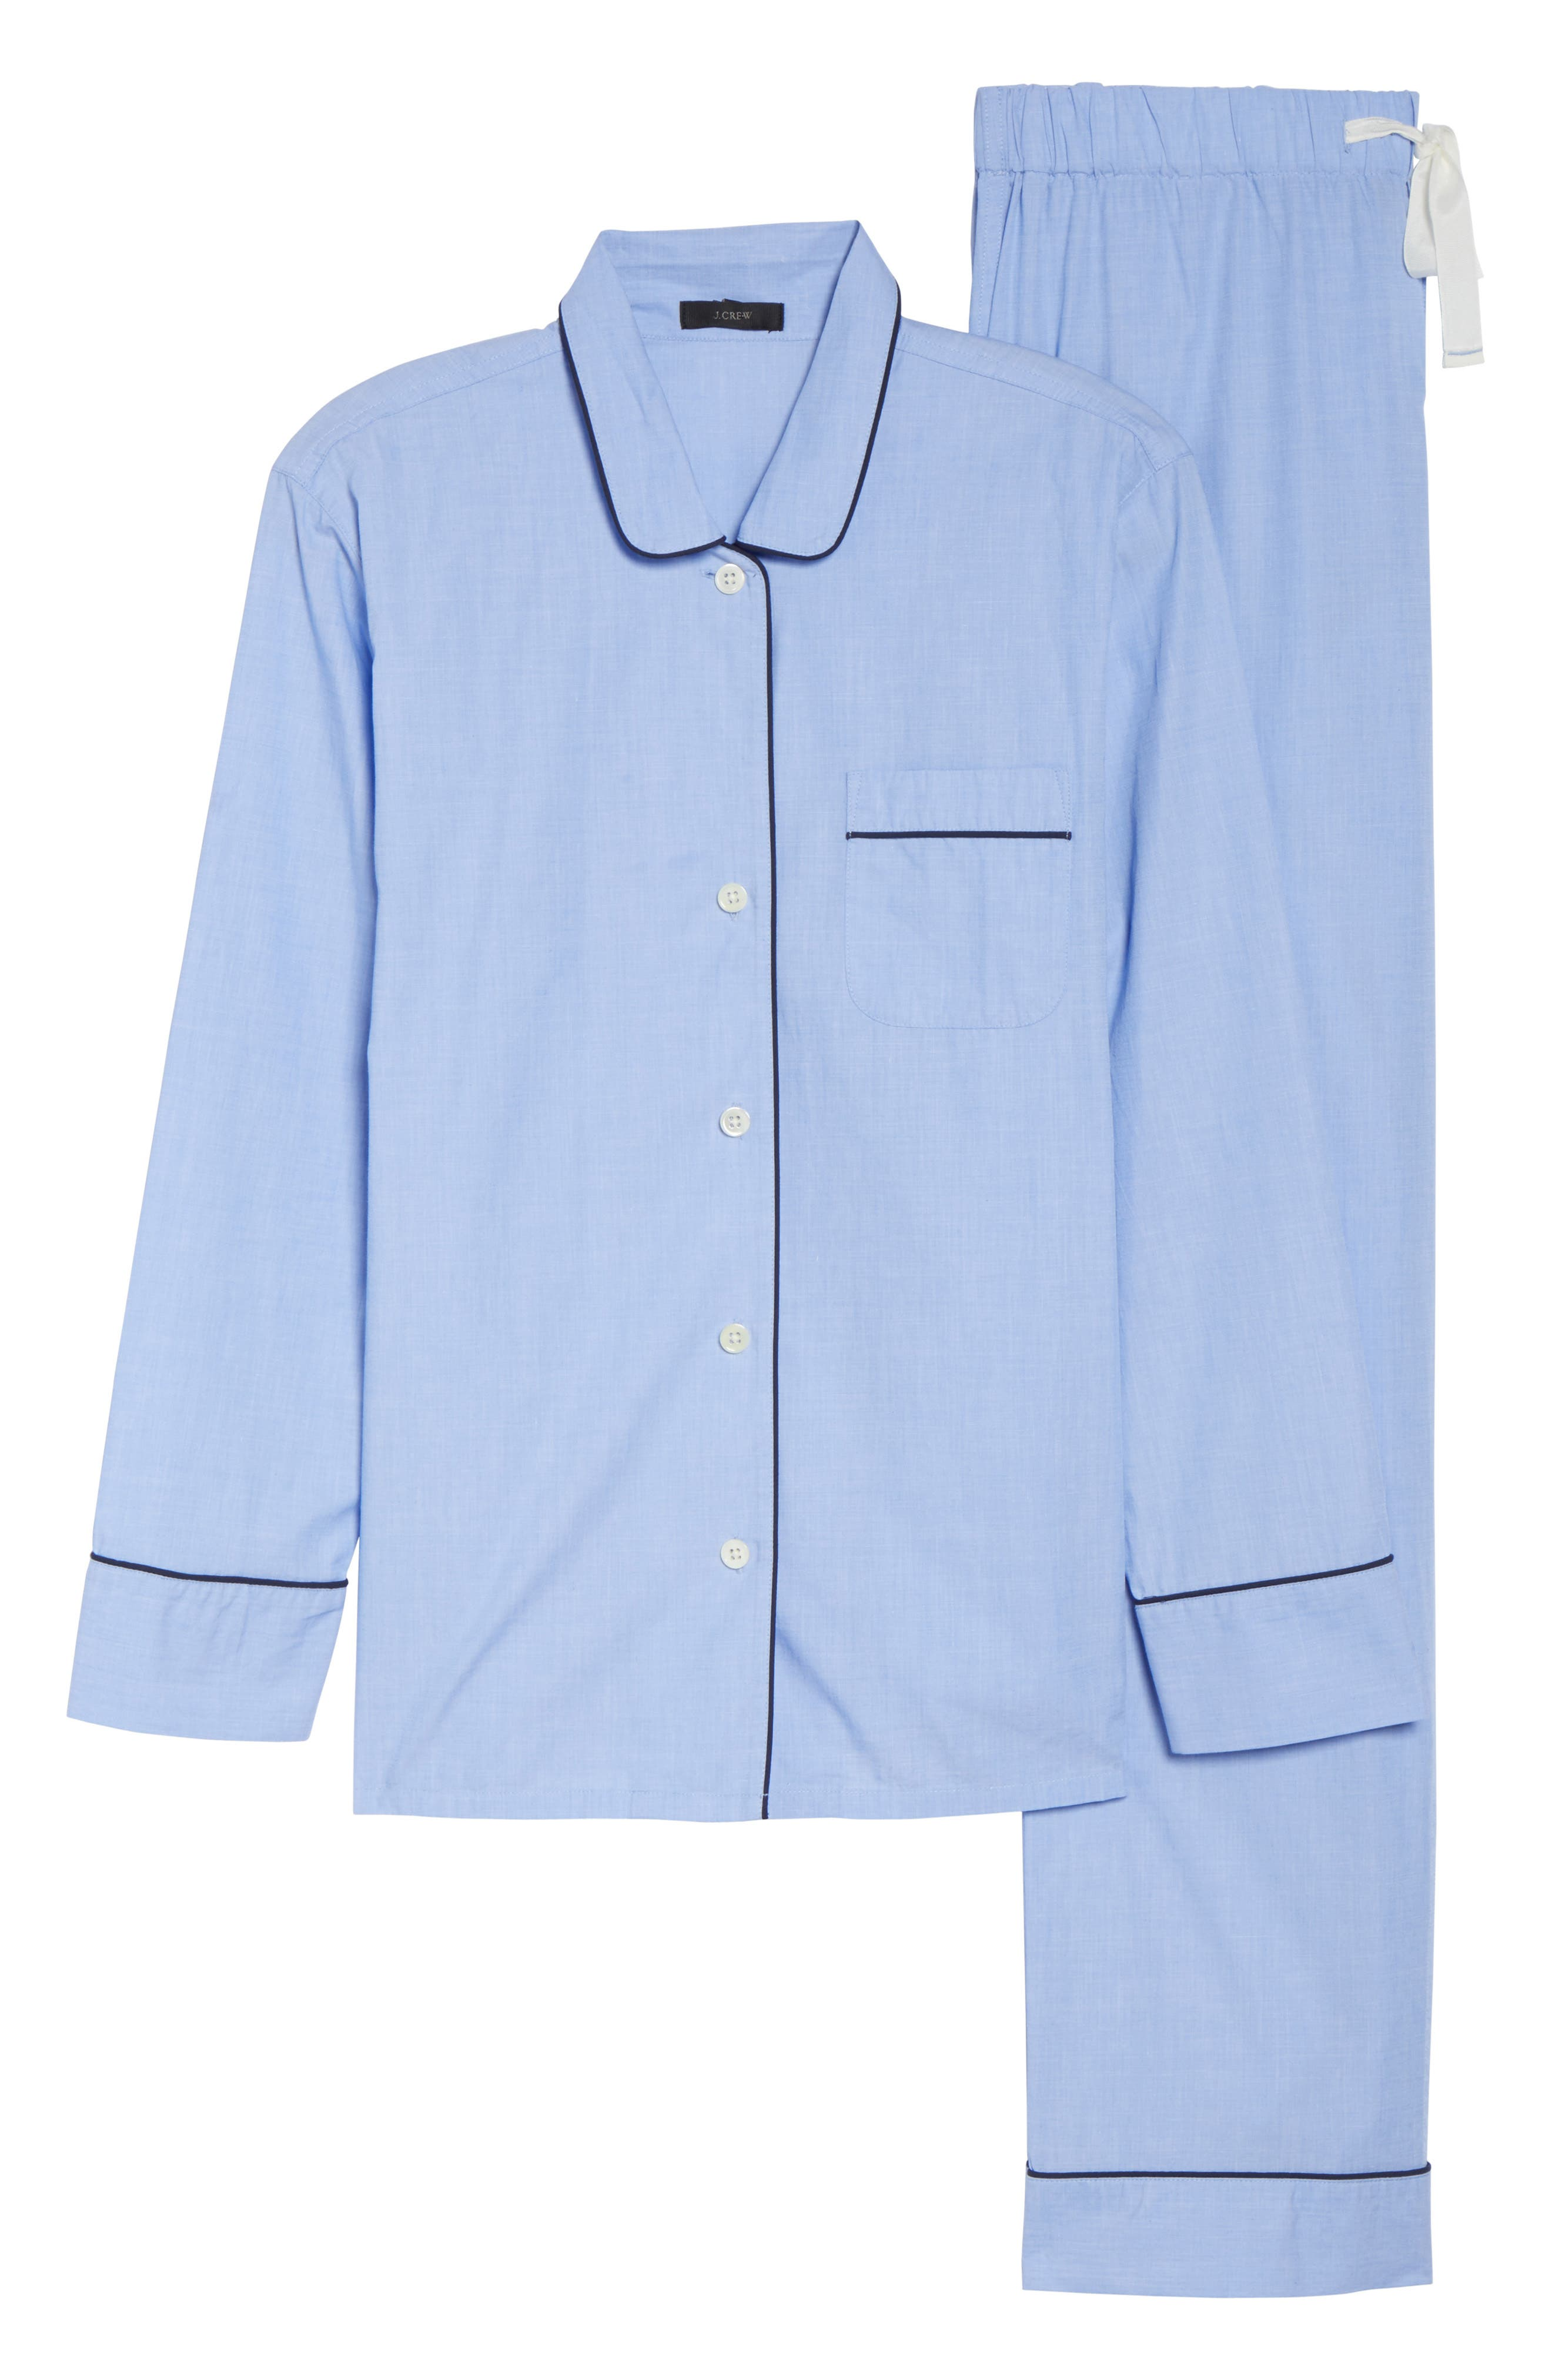 J.Crew Vintage Cotton Pajamas,                             Alternate thumbnail 4, color,                             Hydrangea